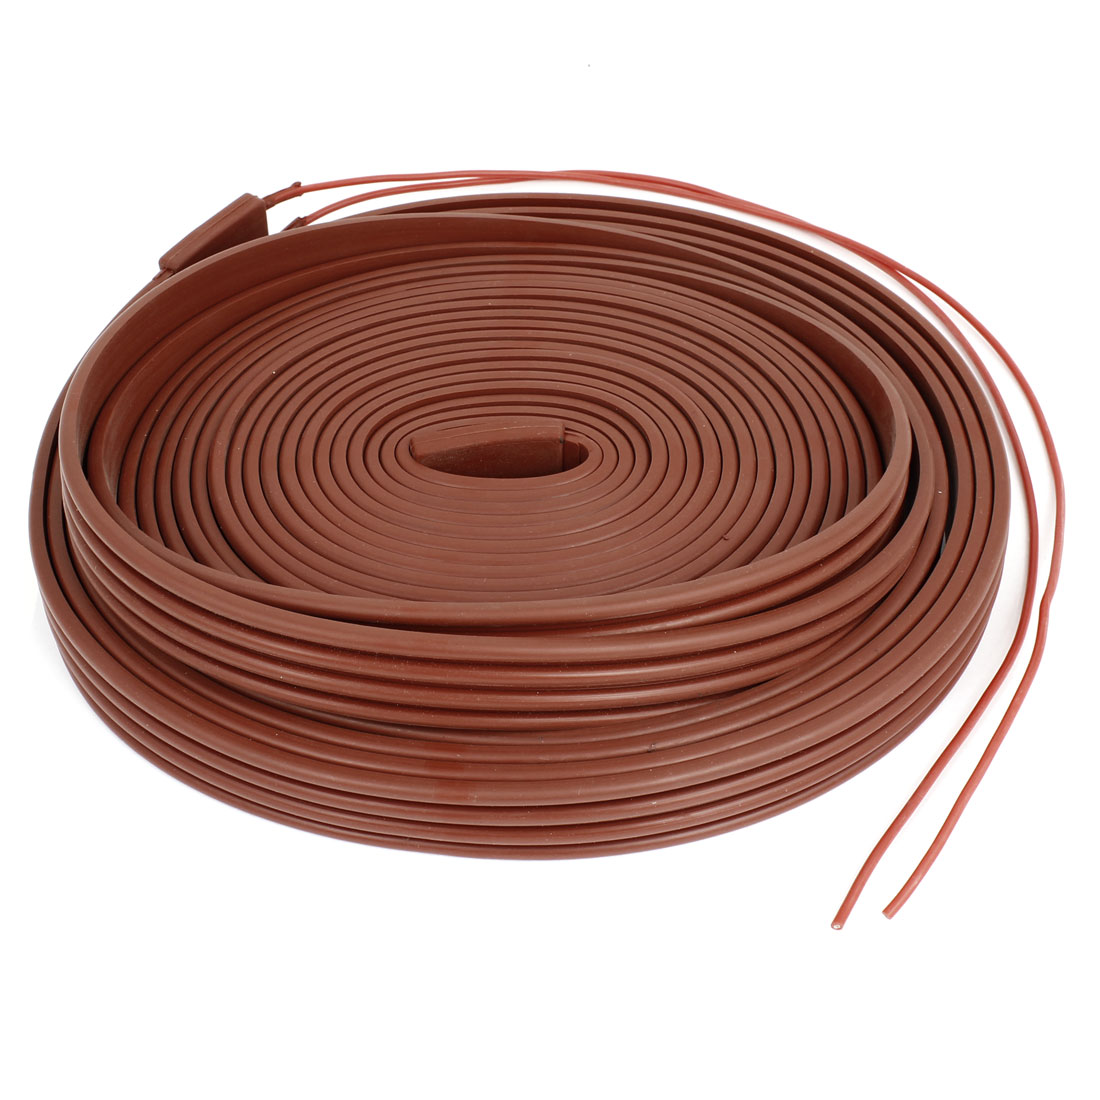 25mm Wide 10M 32.8Ft Long Waterproof Silicone Band Heater Strip 380V Volt